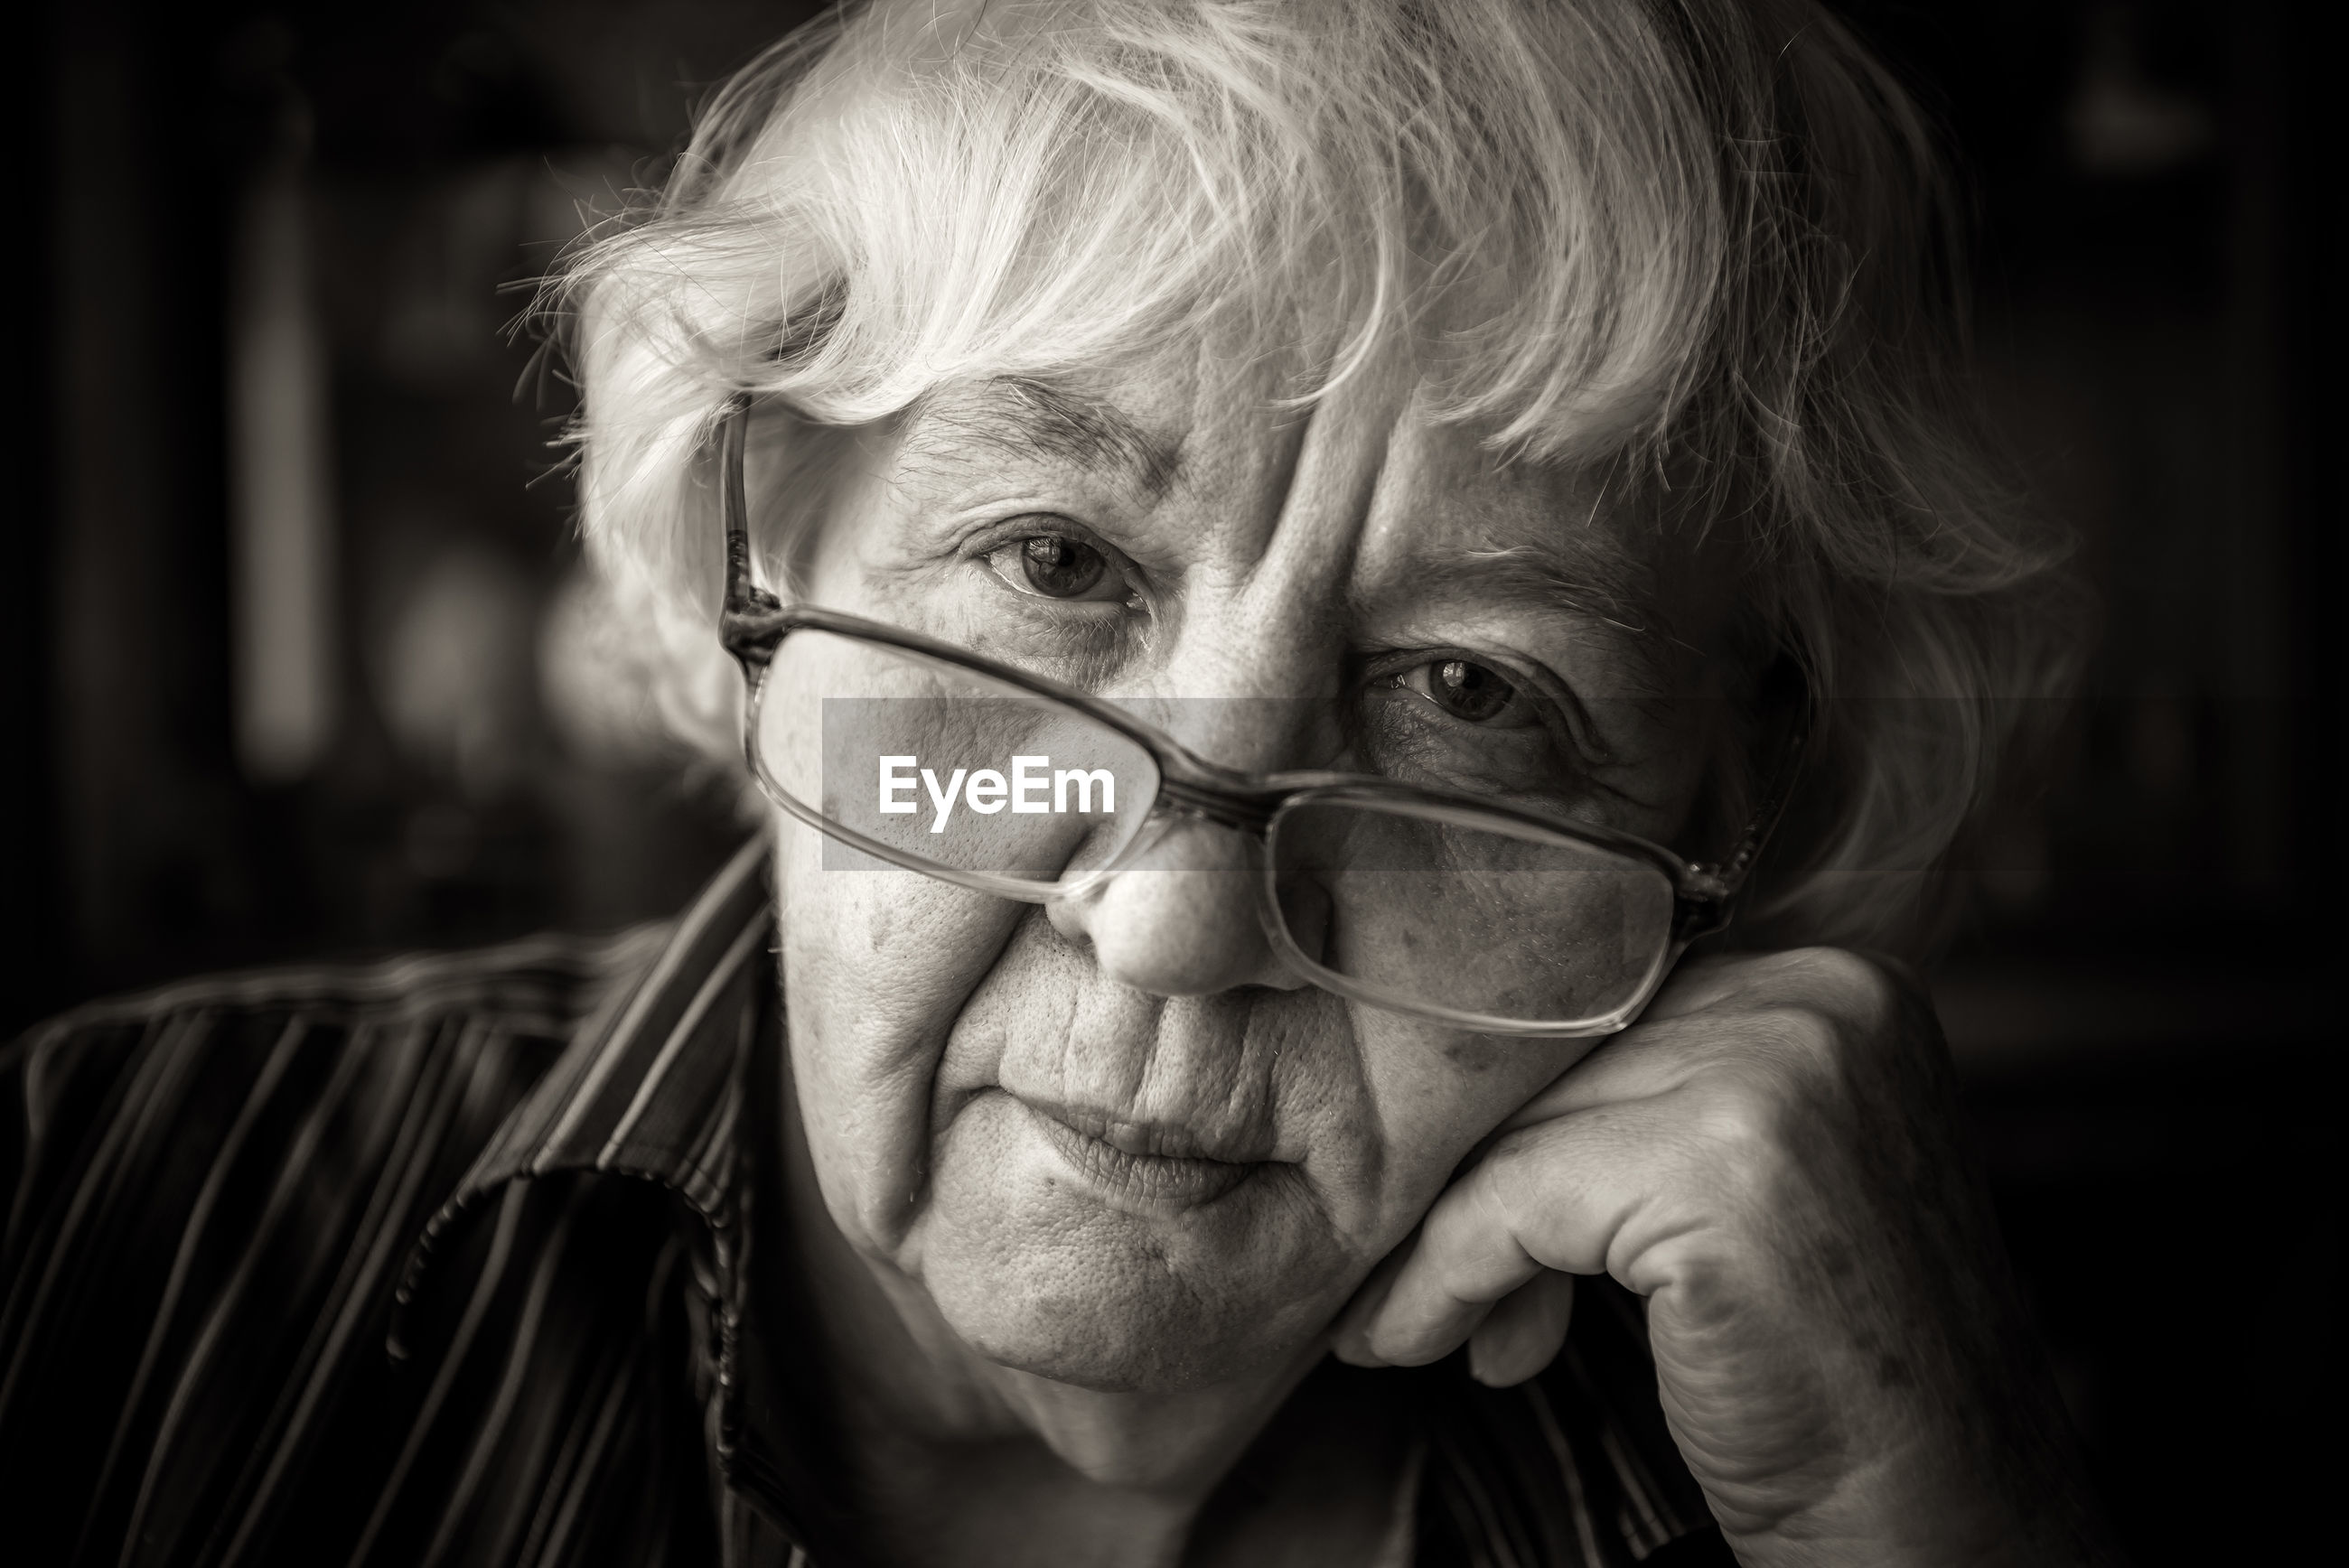 Close-up portrait of senior woman wearing eyeglasses